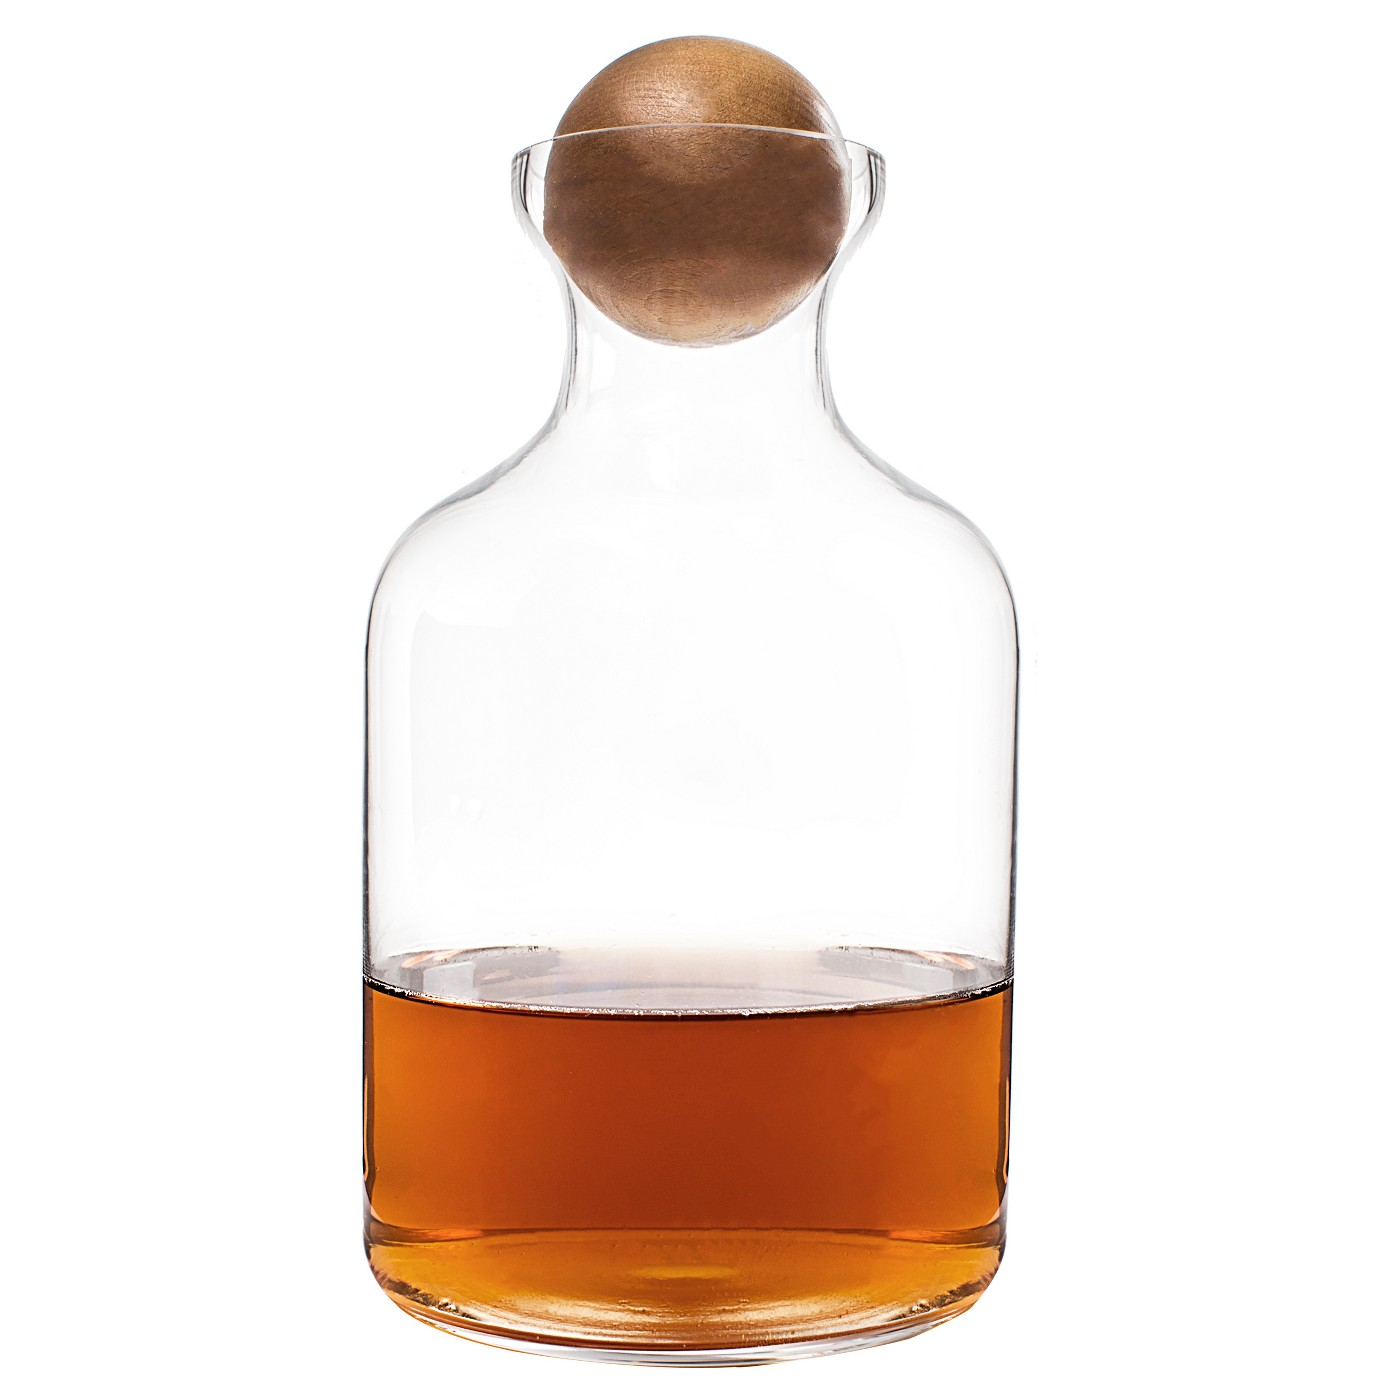 Cathy's Concepts 56 oz. Glass Decanter with Wood Stopper - image 1 of 4